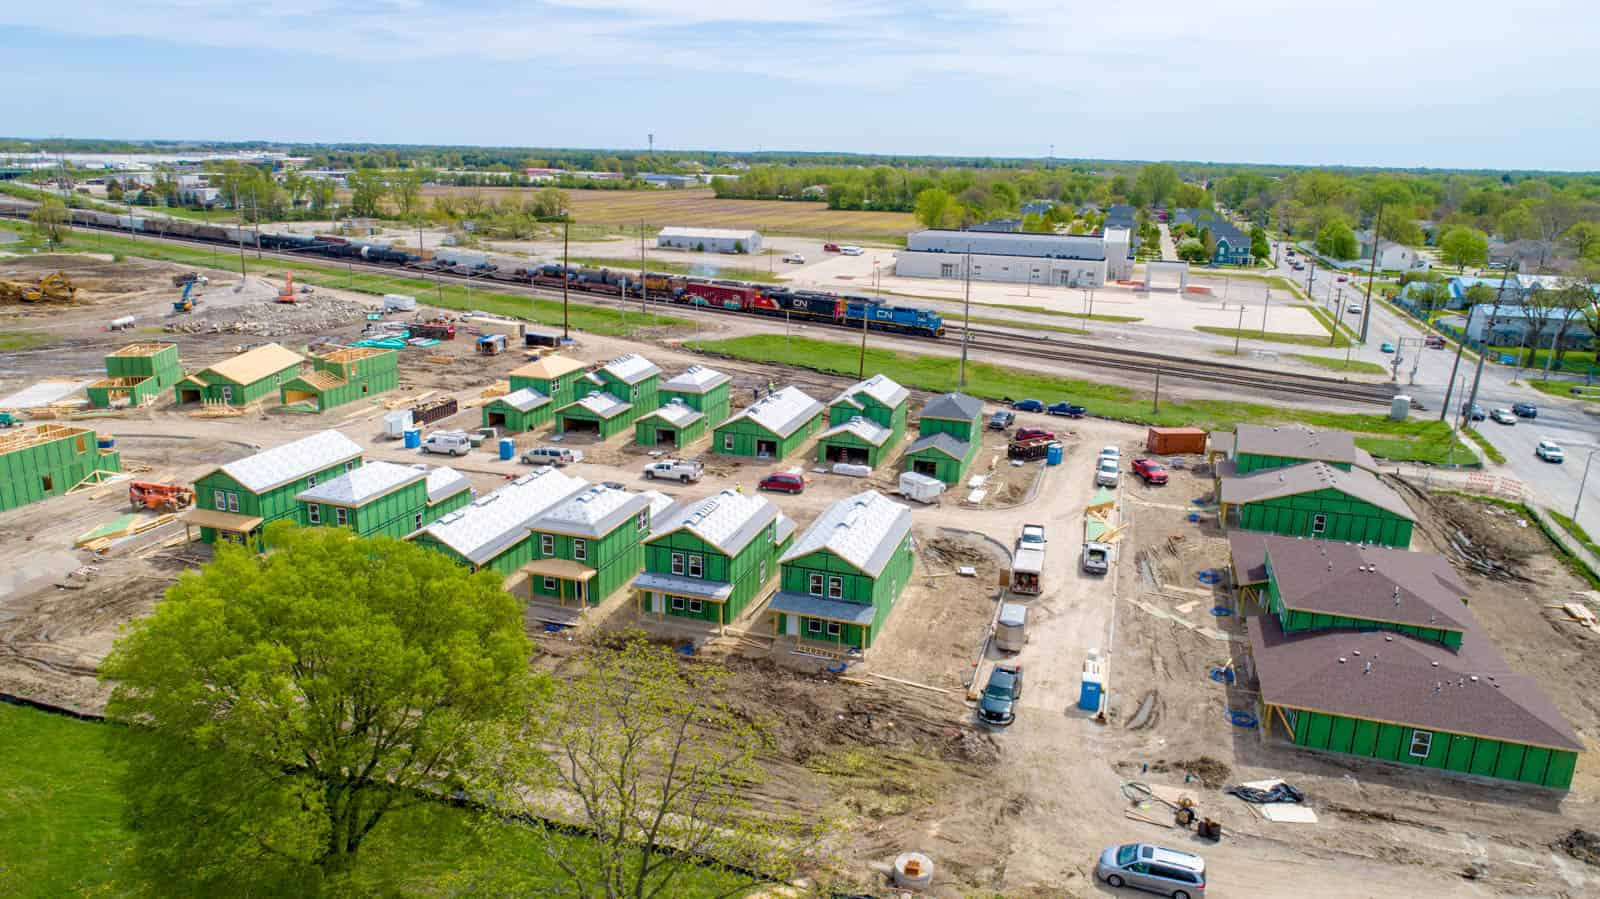 drone photo of commercial development project in Peoria, IL